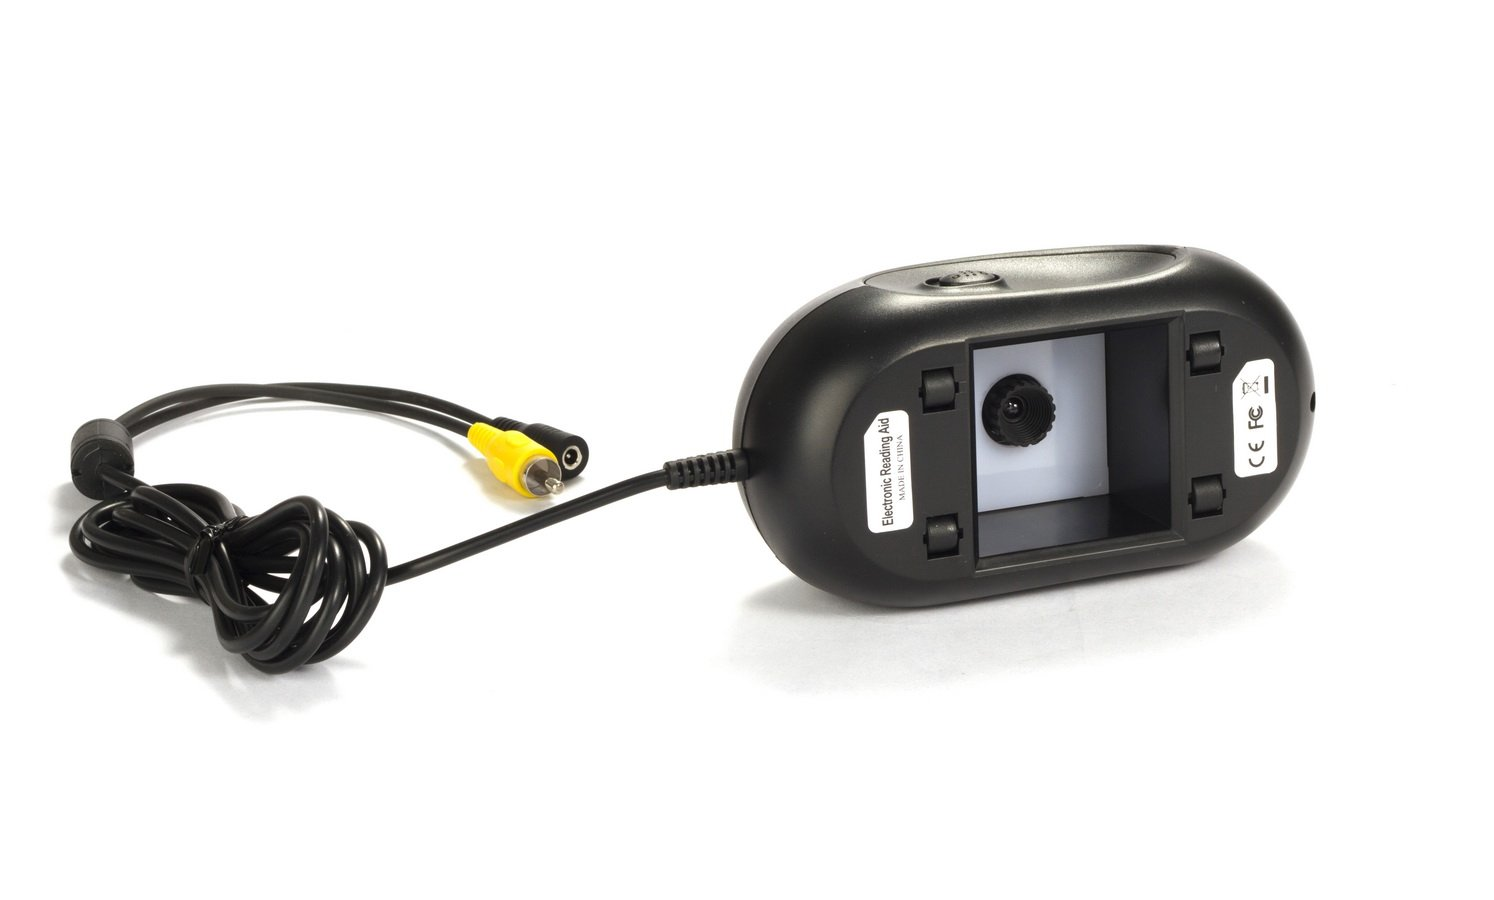 Mustcam TV Magnifier Electronic Reading Aid with 4 Color Modes, Freeze, TV-out to any Monitor with TV-in by Mustcam